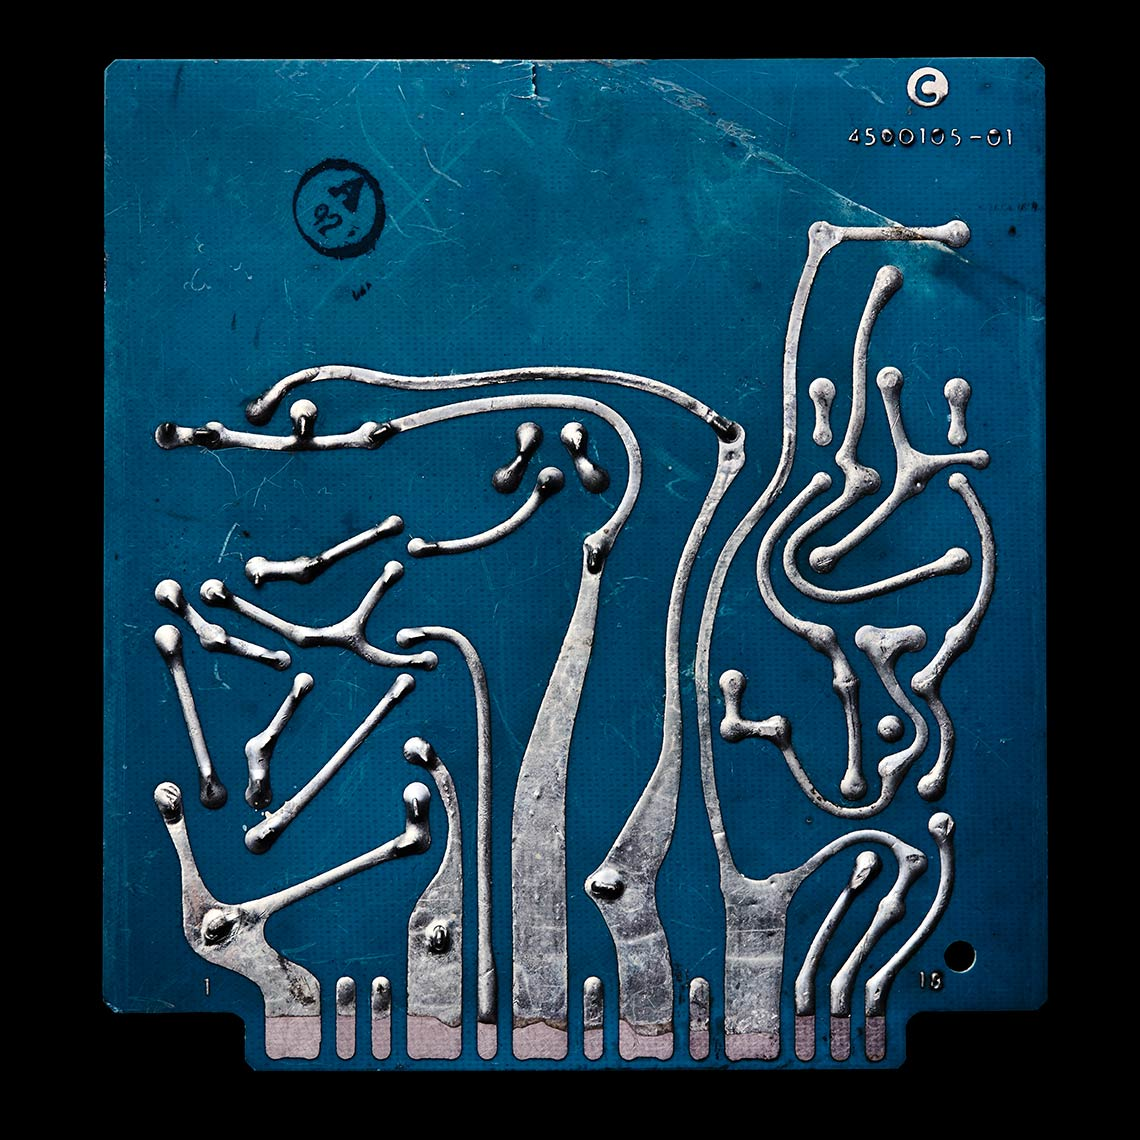 Macro photography of a blue antique circuit board